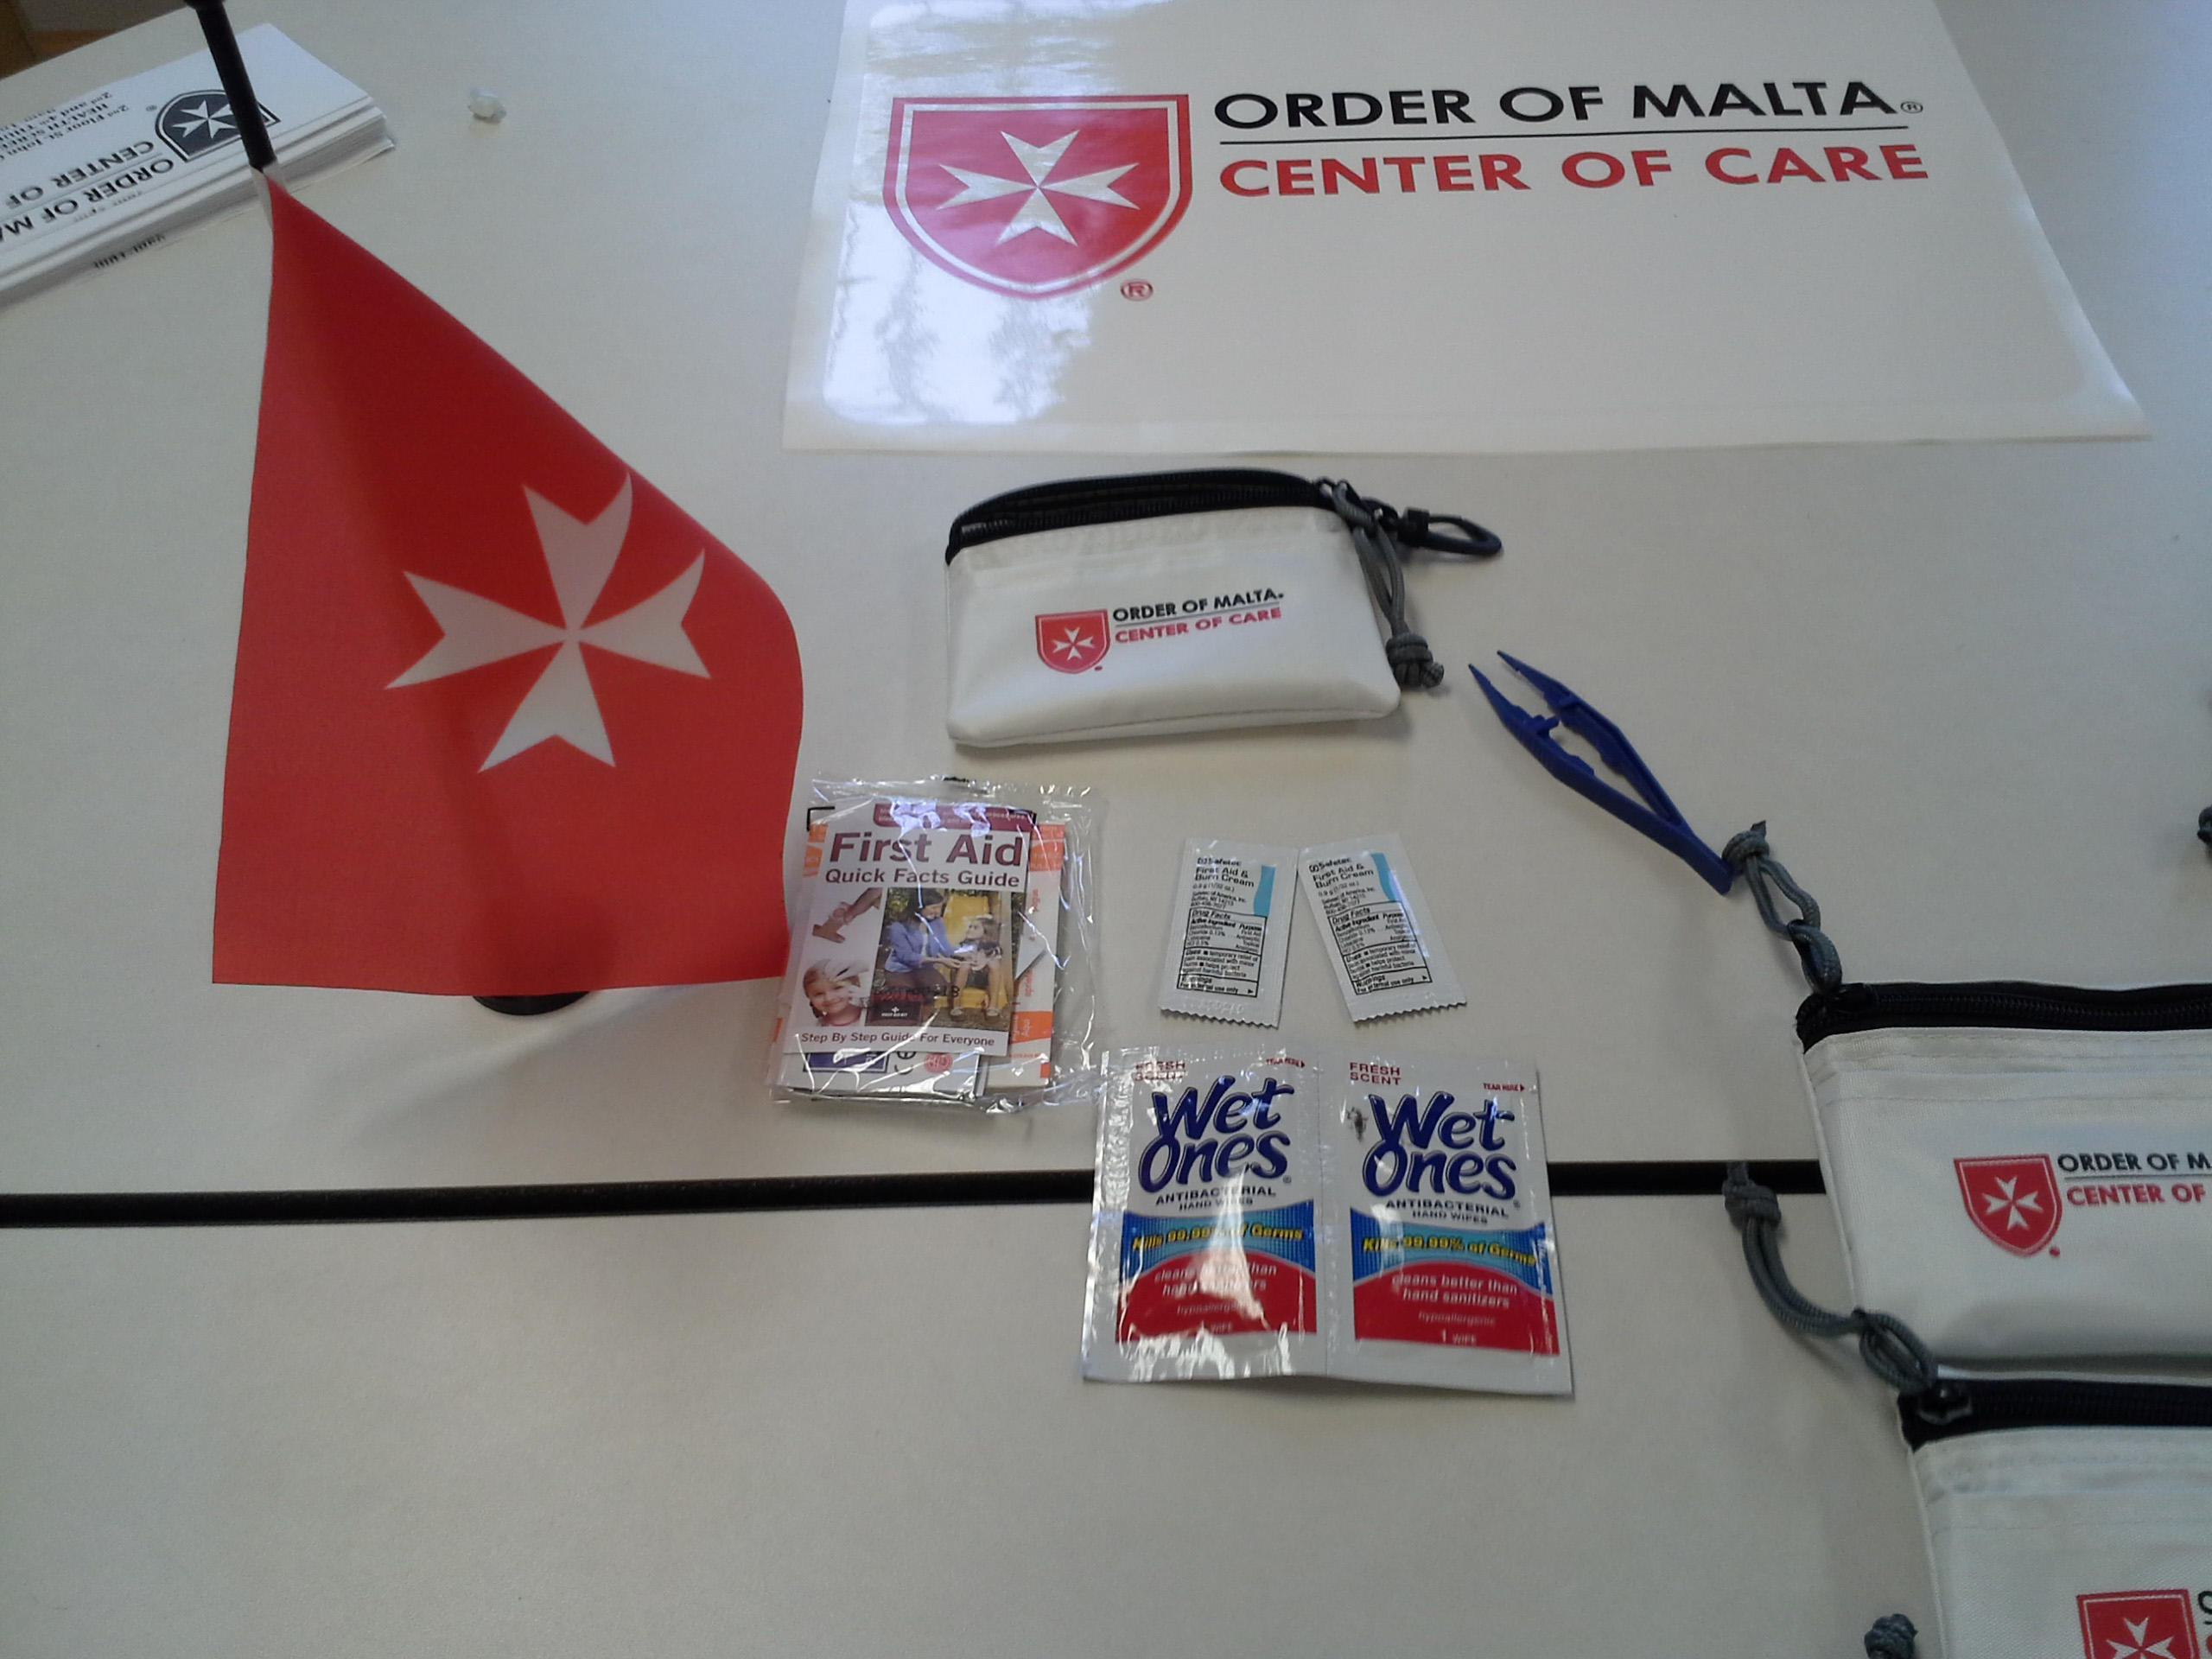 Order of Malta Center of Care